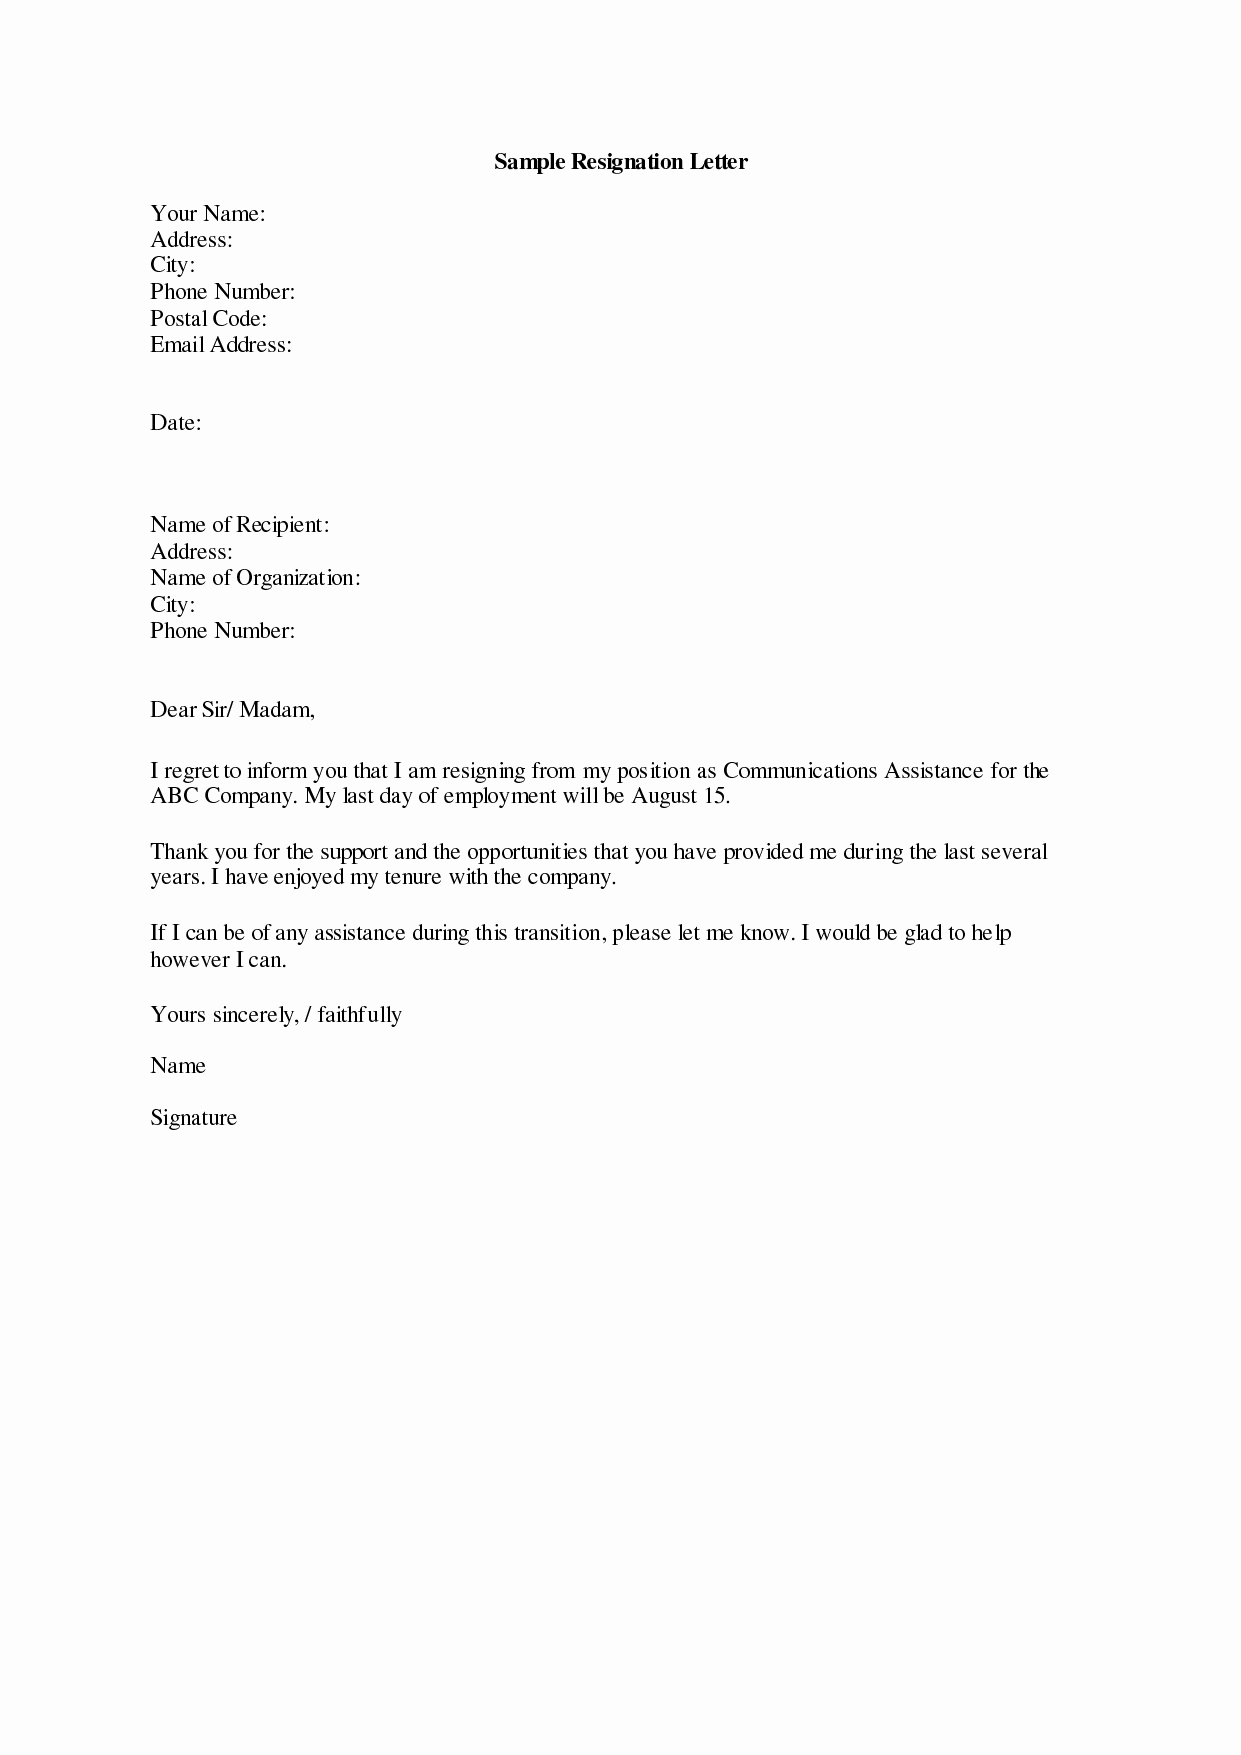 Letter Of Resignation Template Download Inspirational Resignation Letter Template